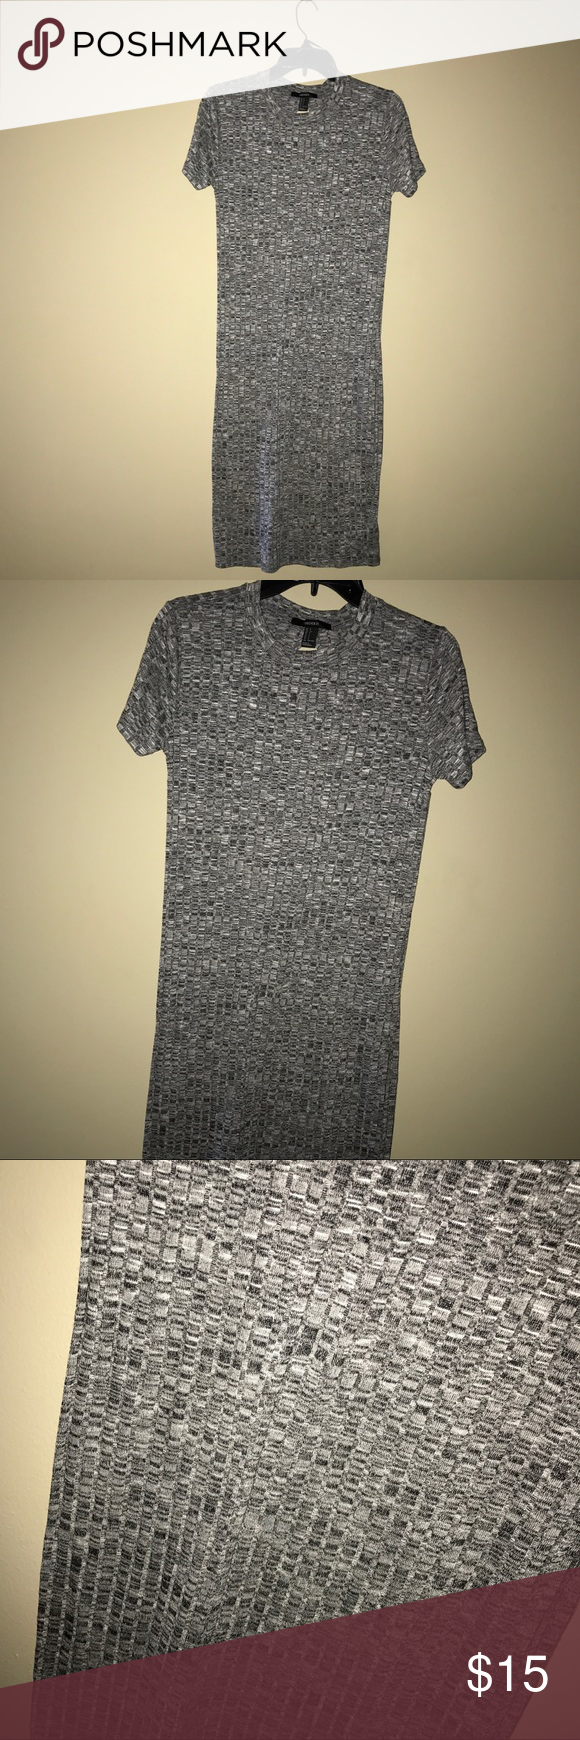 Forever 21 Midi Shift Dress This is a Midi dress that is marled printed from forever21. Its a size Small but runs big it can fit a person who is a size medium if you want a bodycon fit. Forever 21 Dresses Midi